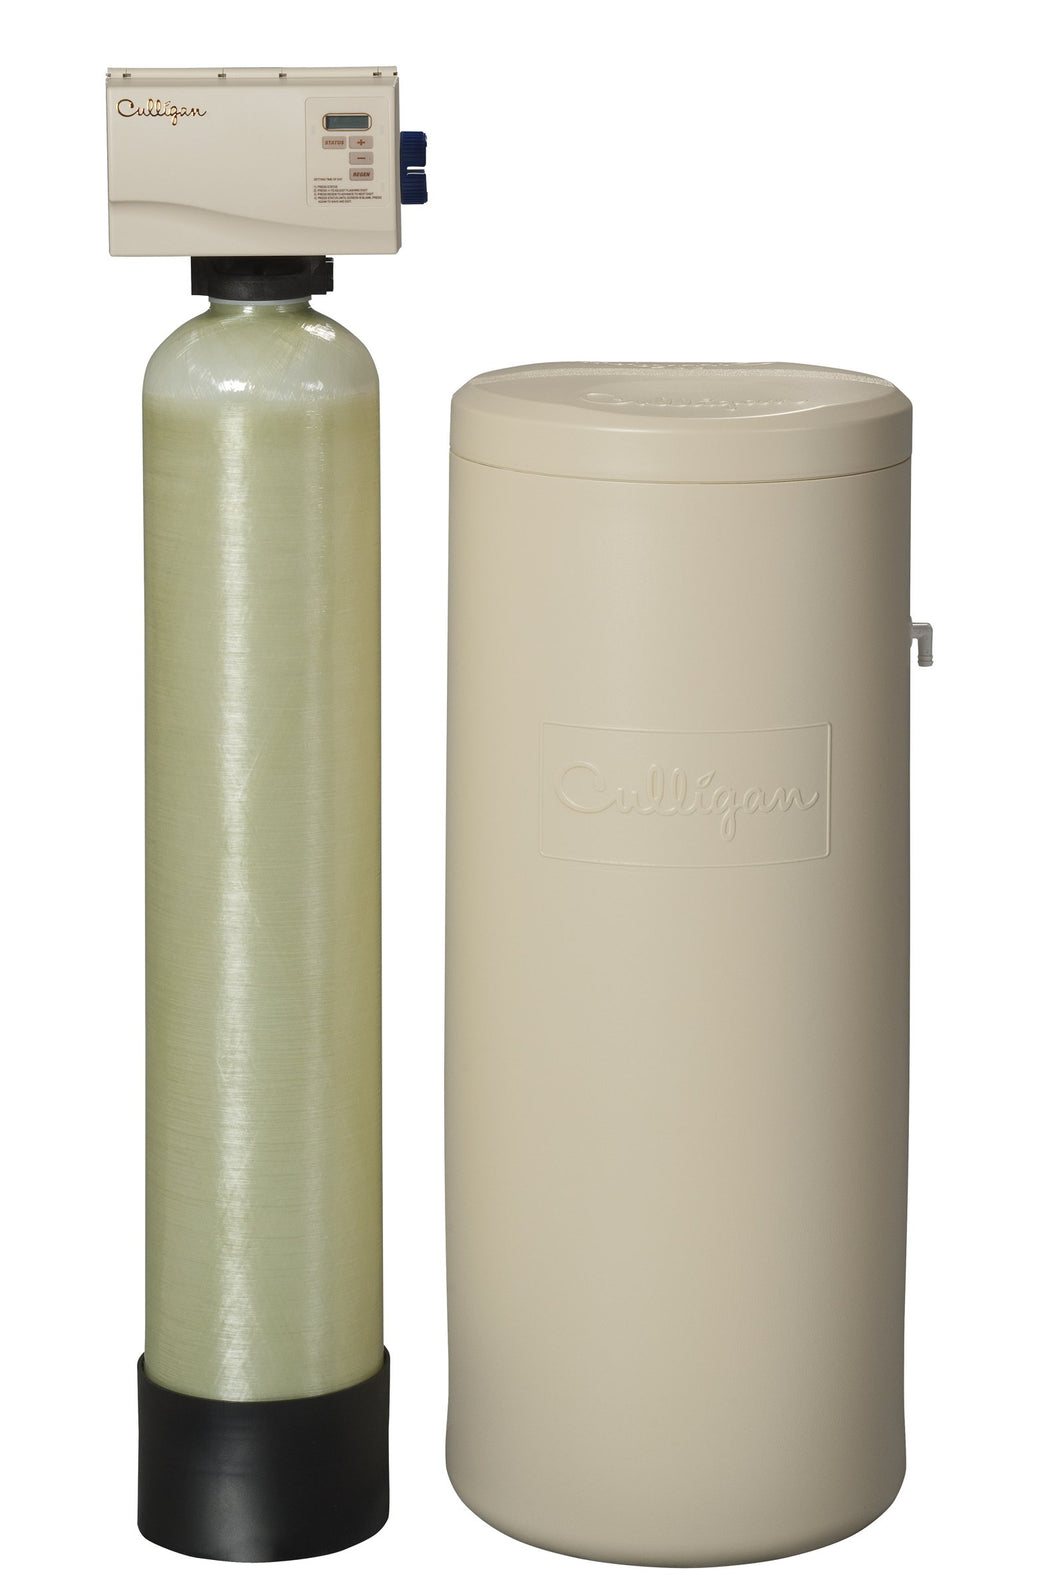 Culligan Medallist Water Softener